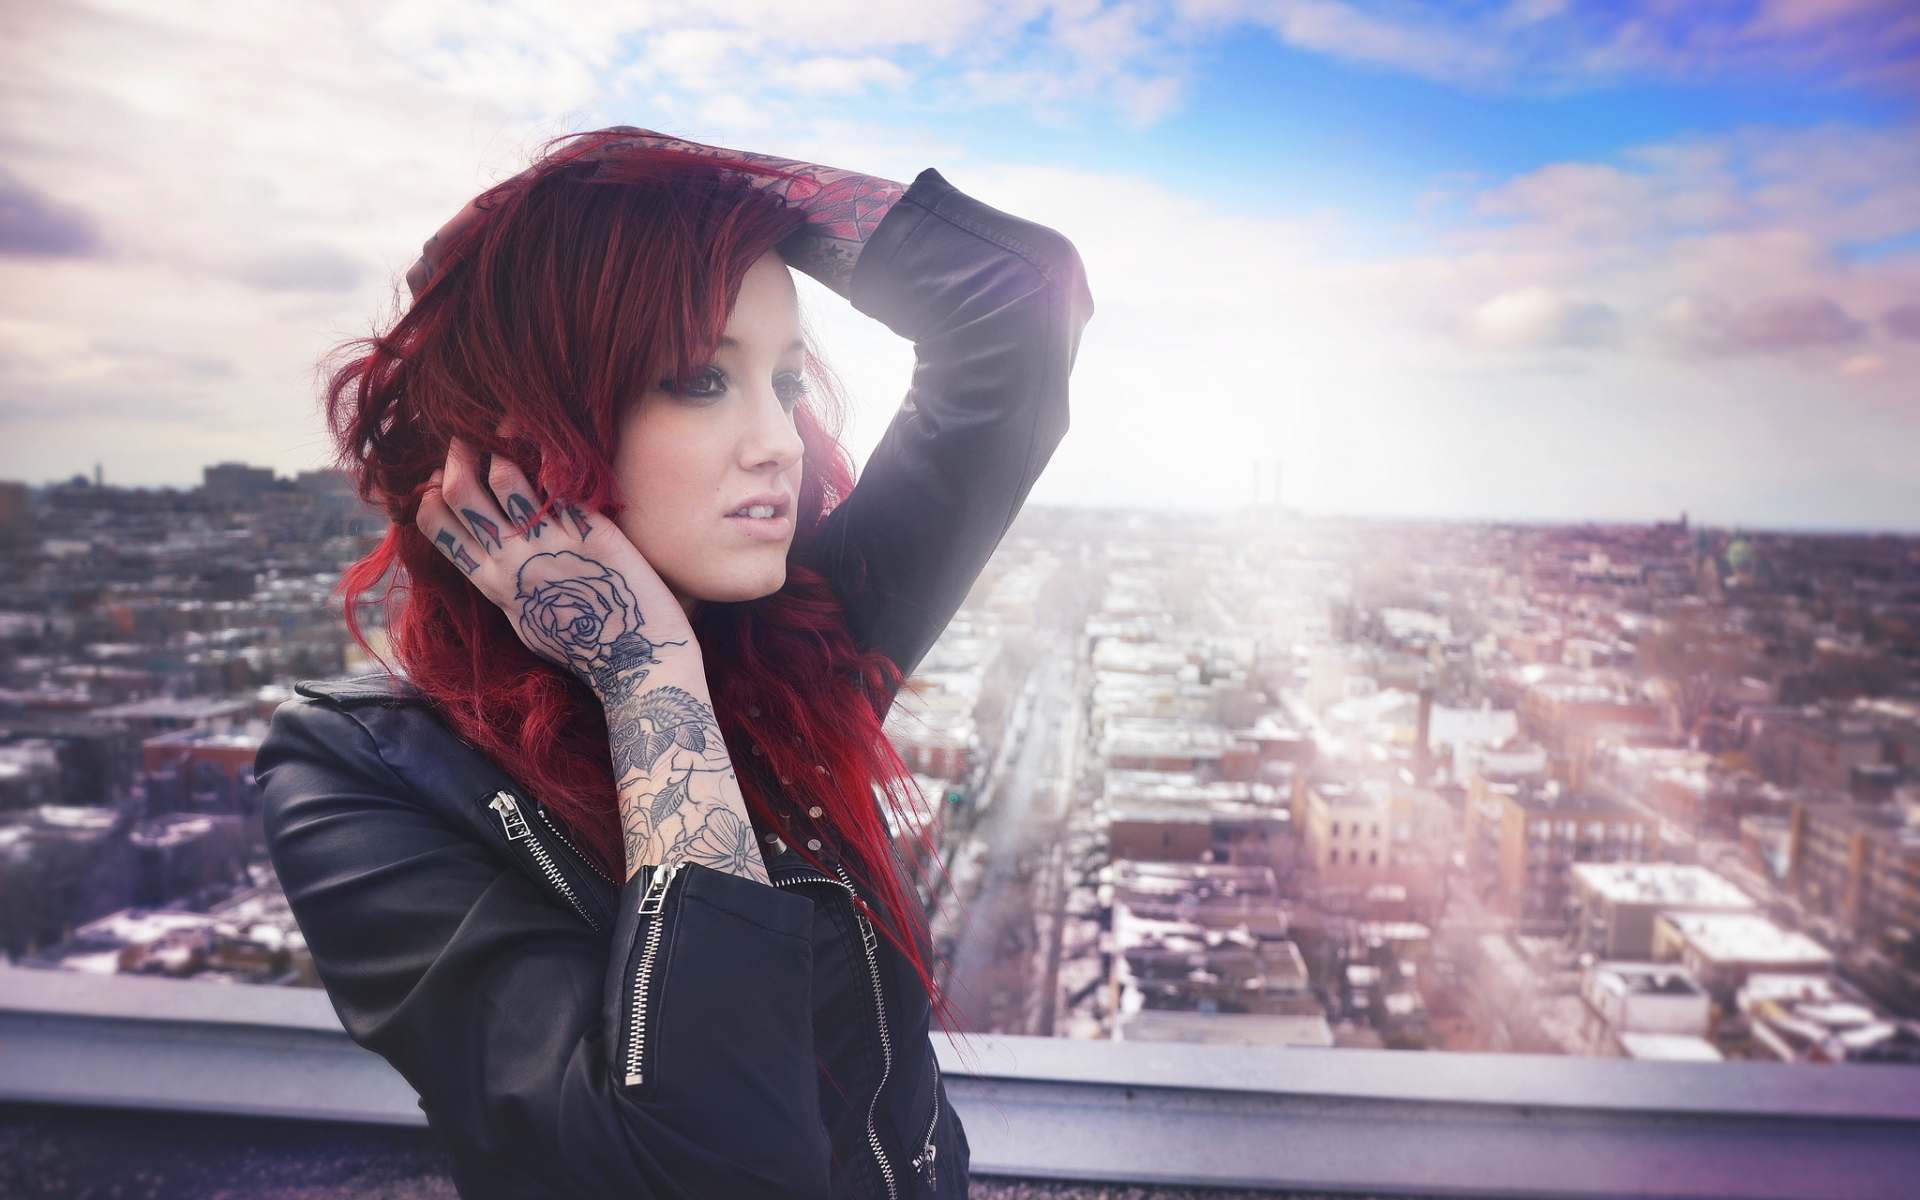 Tattoo Girl Wallpapers High Quality | Download Free